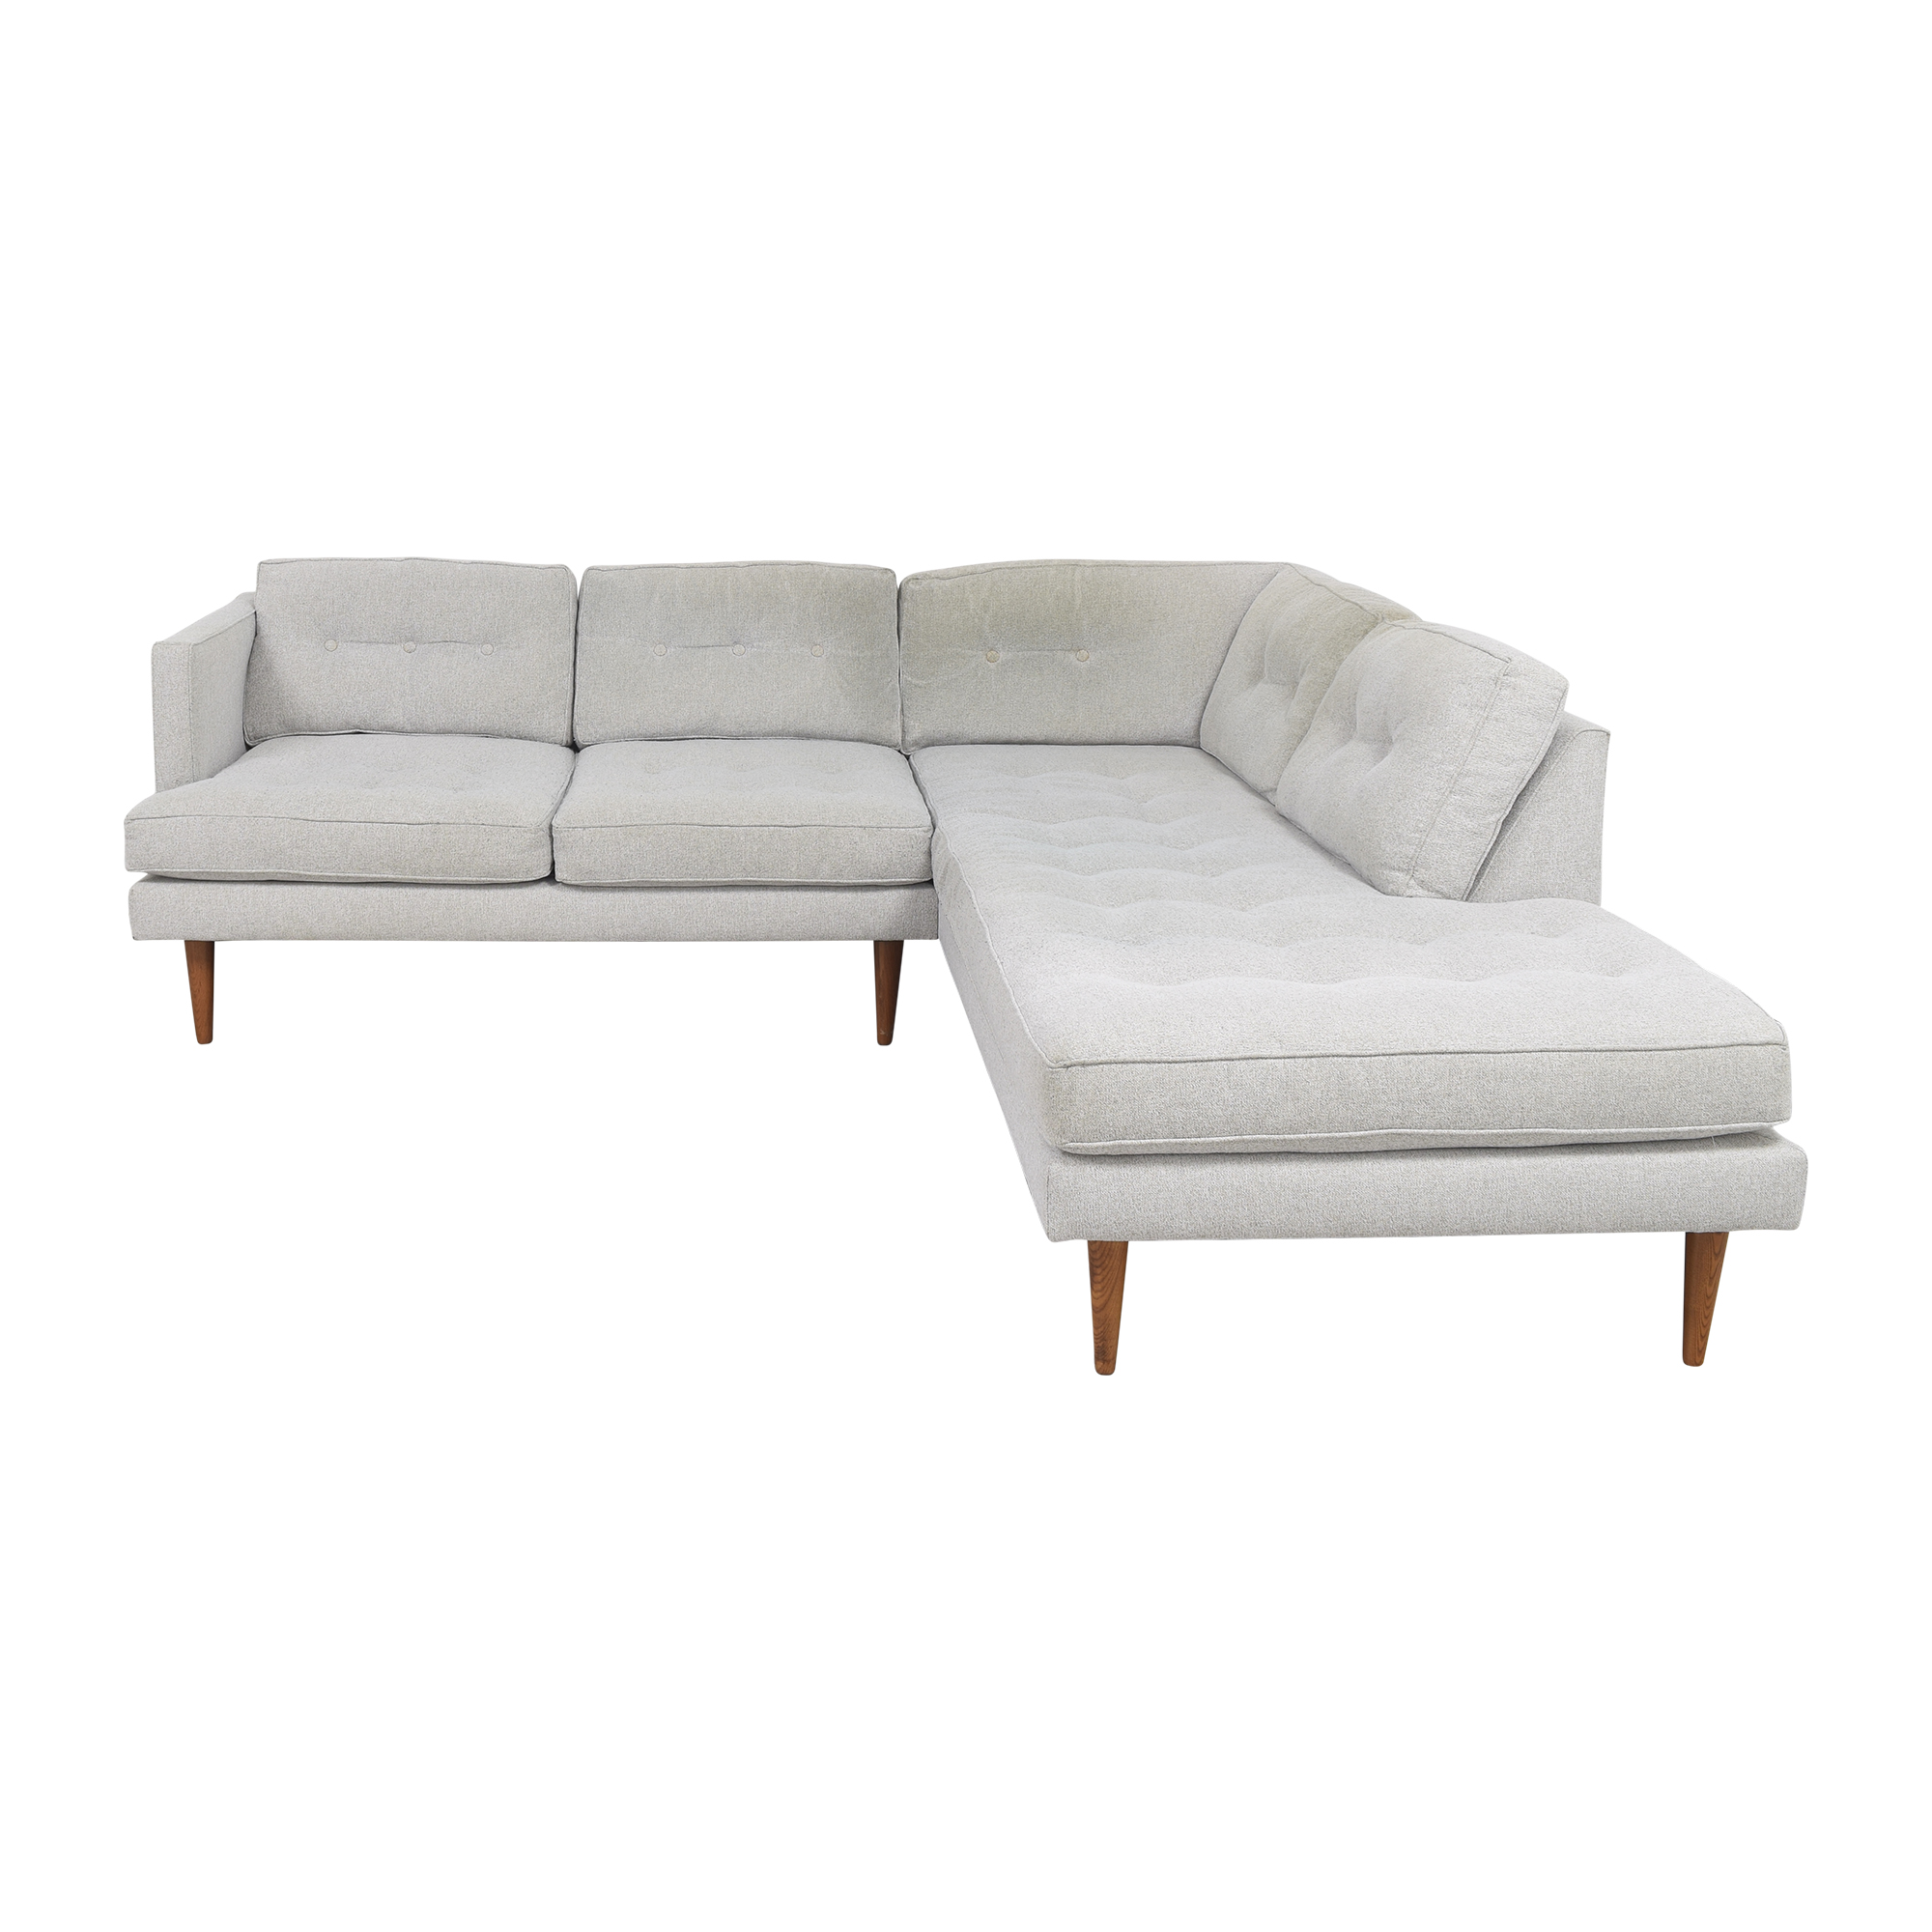 West Elm West Elm Terminal Chaise Sectional Sofa ma